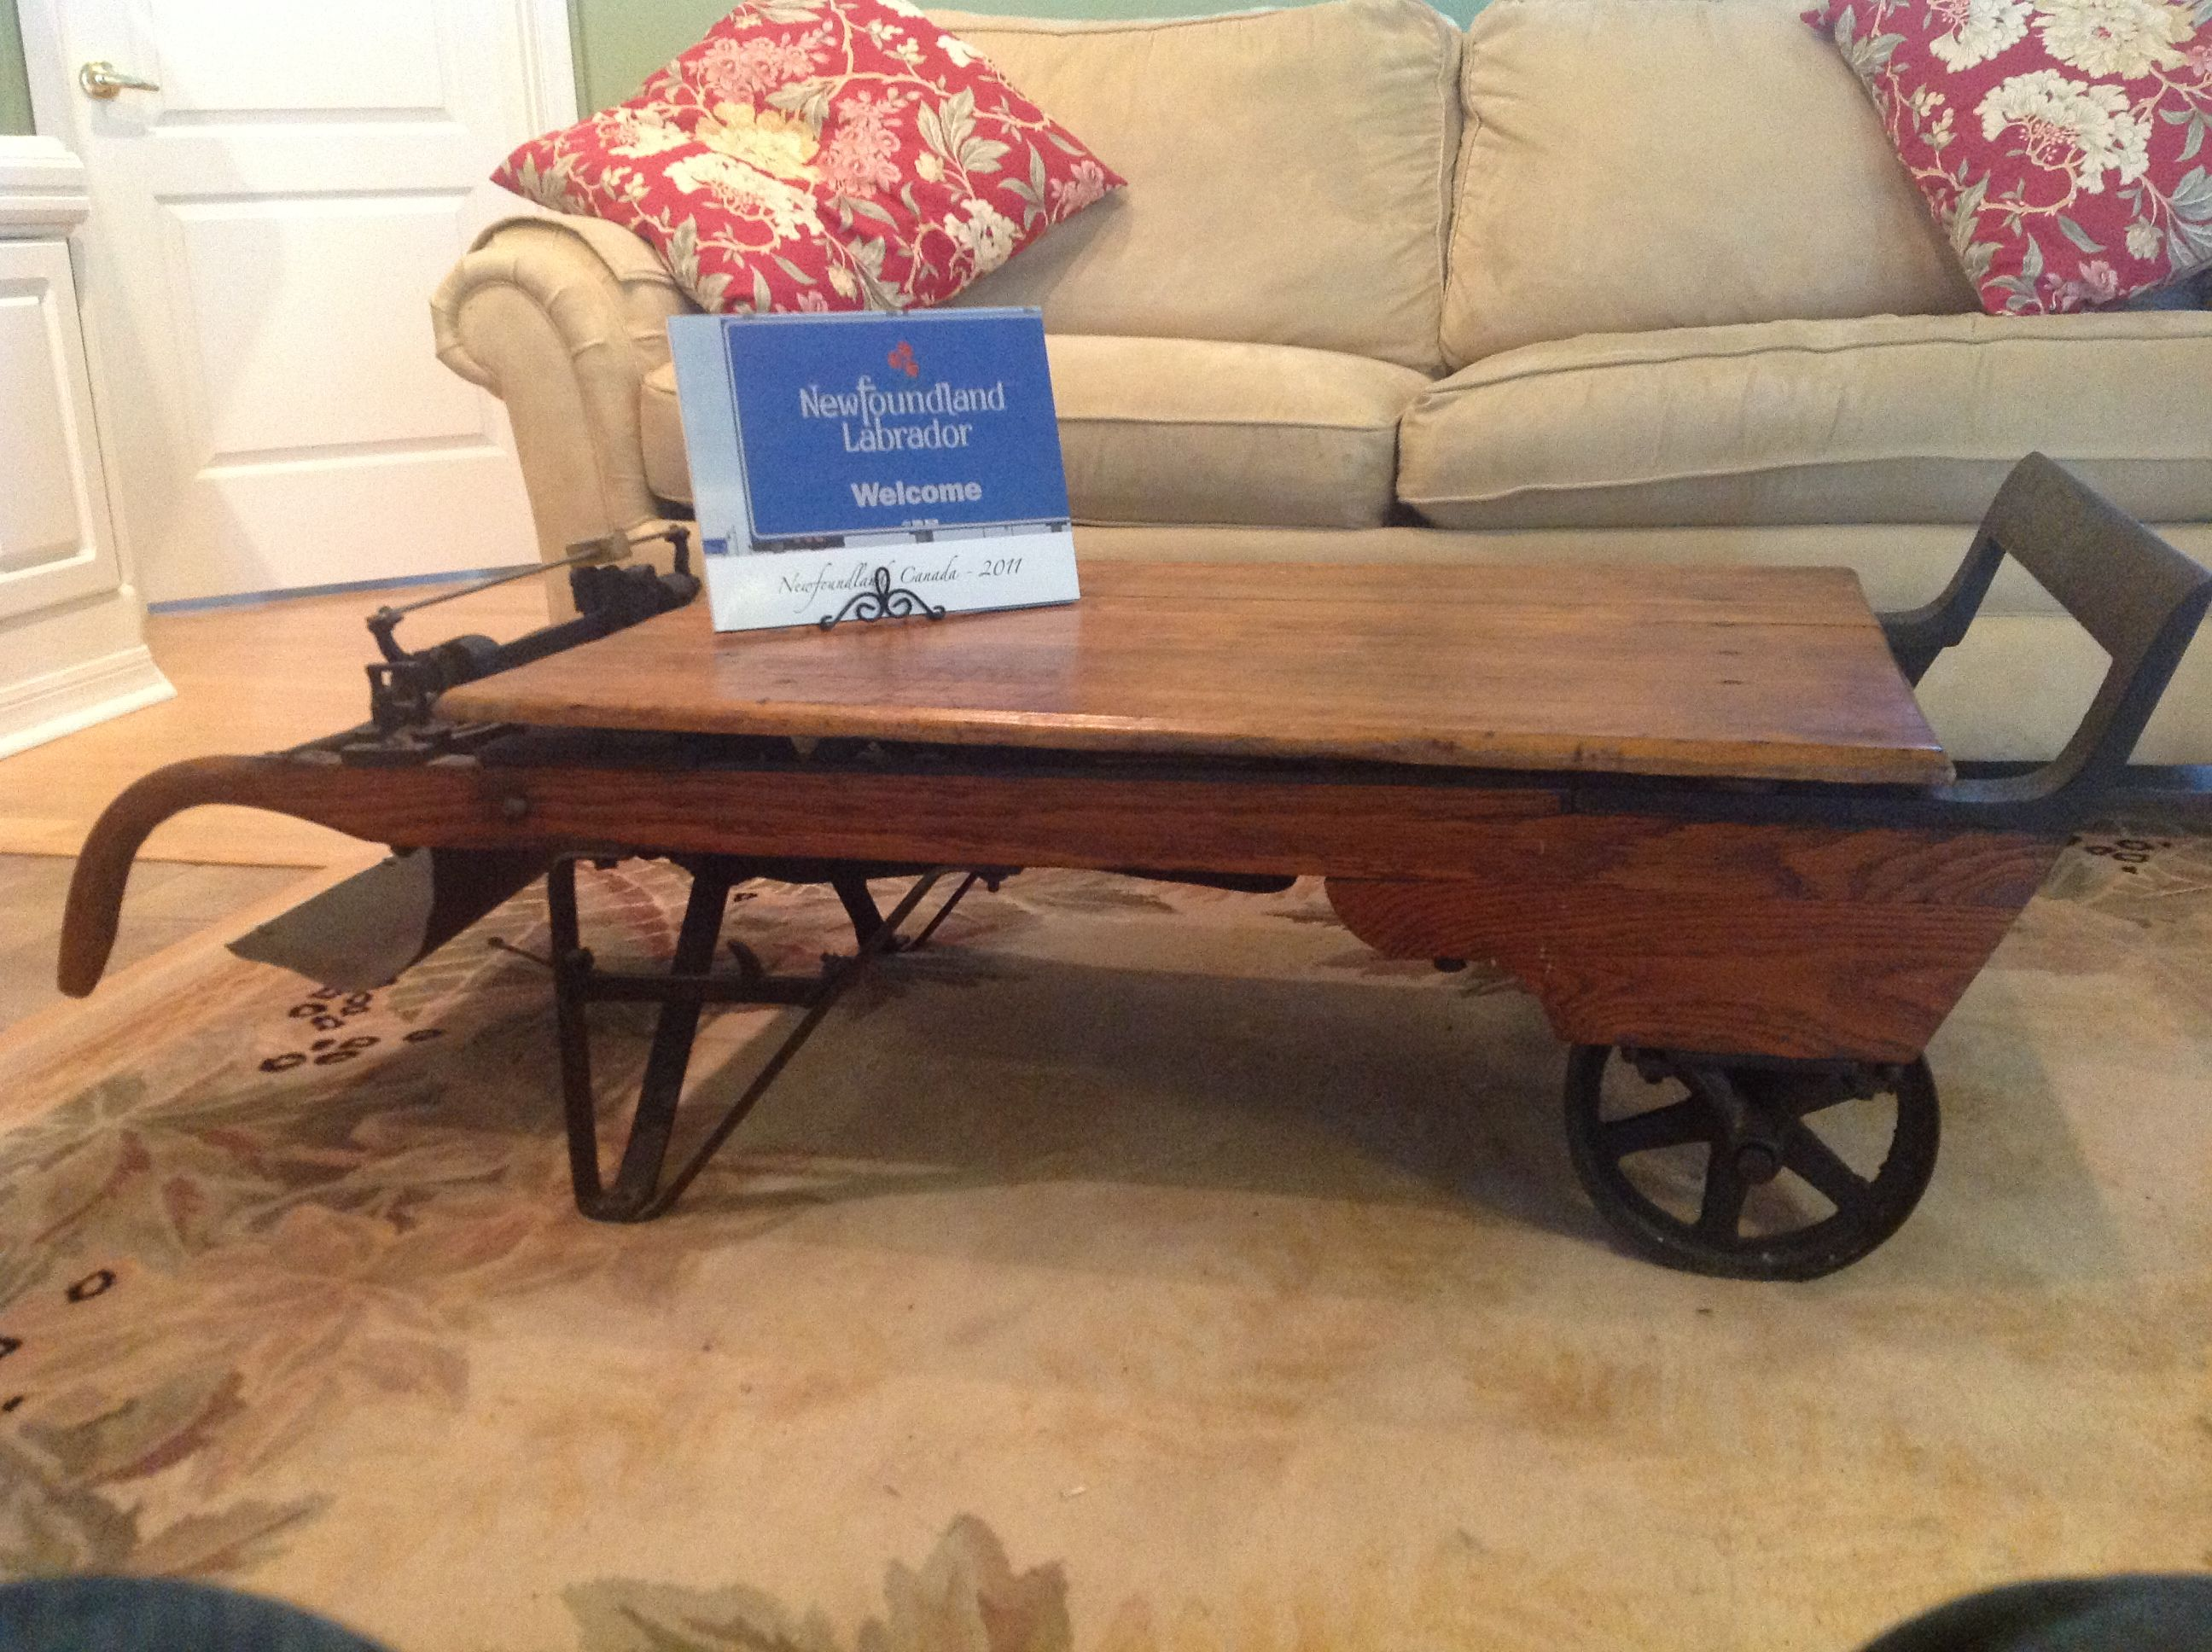 Pin By V H On Vintage Props Barn Wood Crafts Living Room Coffee Table Coffee Table [ 1936 x 2592 Pixel ]